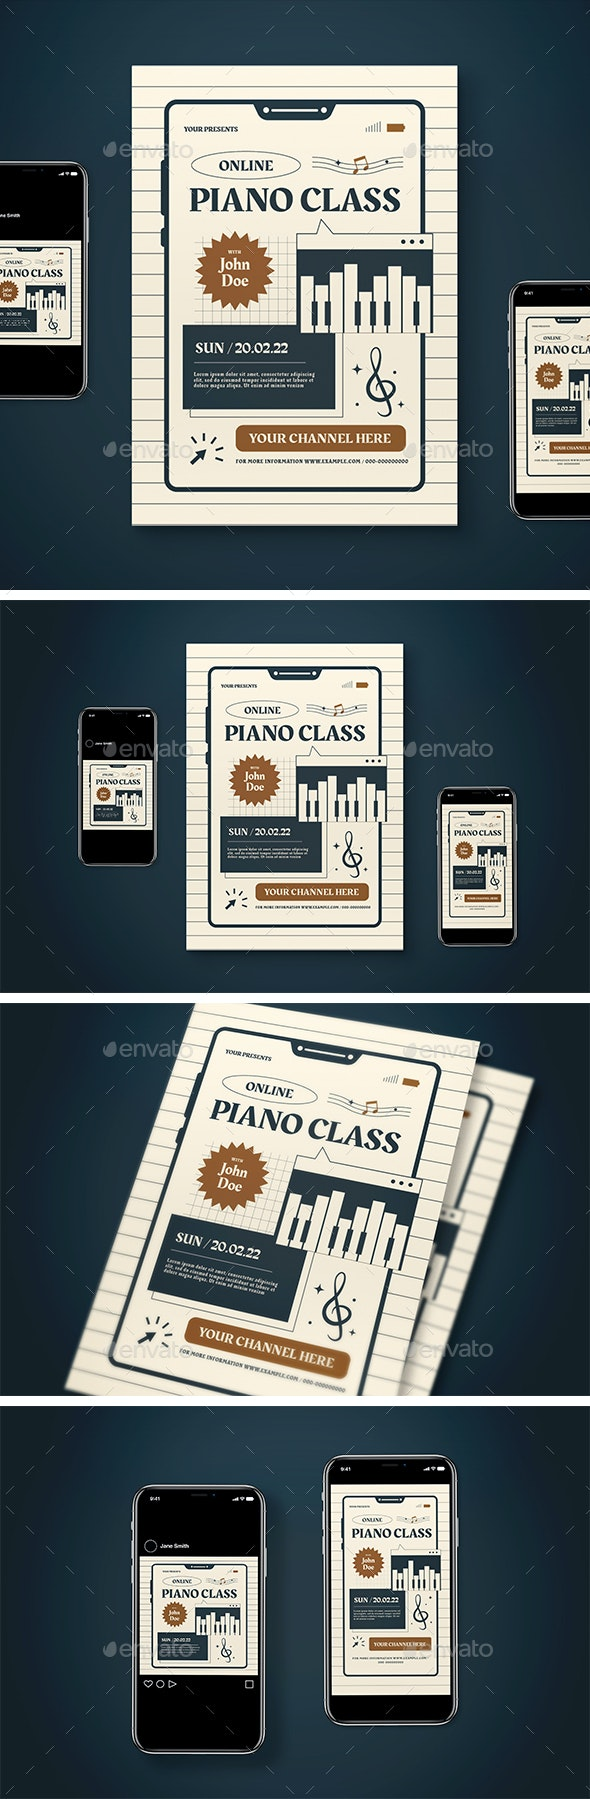 Online Piano Class Flyer Pack - Flyers Print Templates